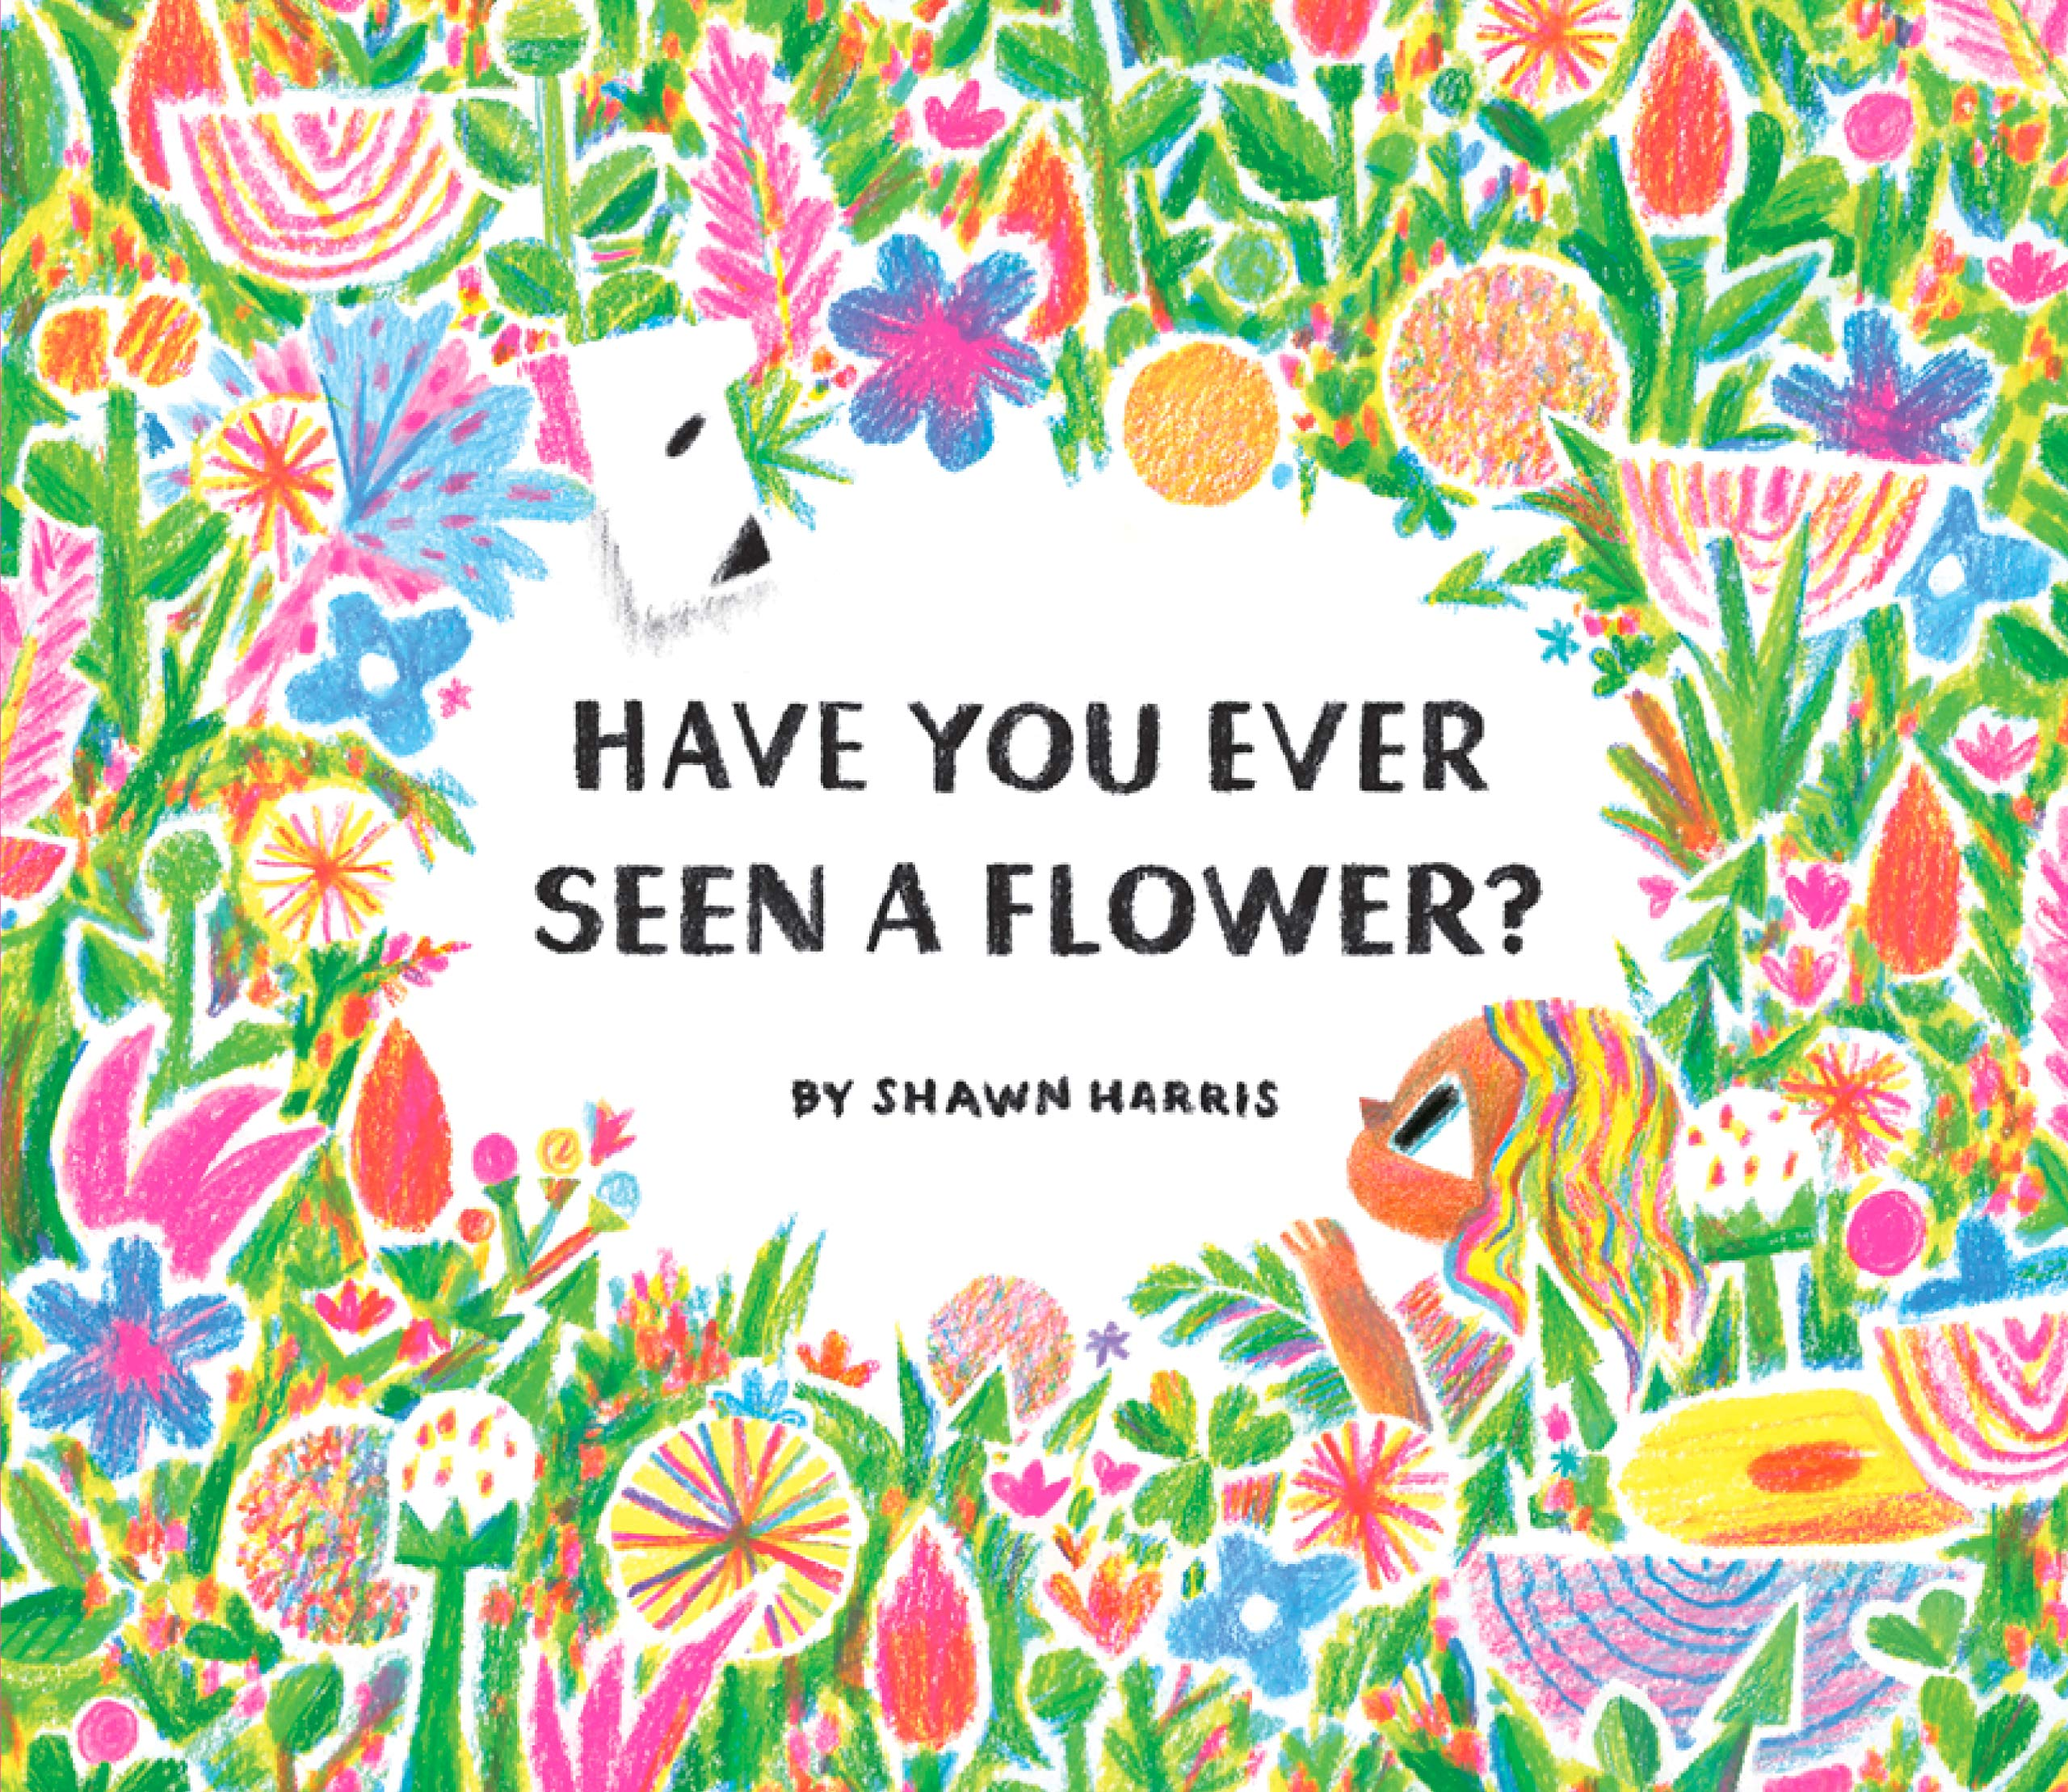 Amazon.com: Have You Ever Seen a Flower? (9781452182704): Harris, Shawn:  Books